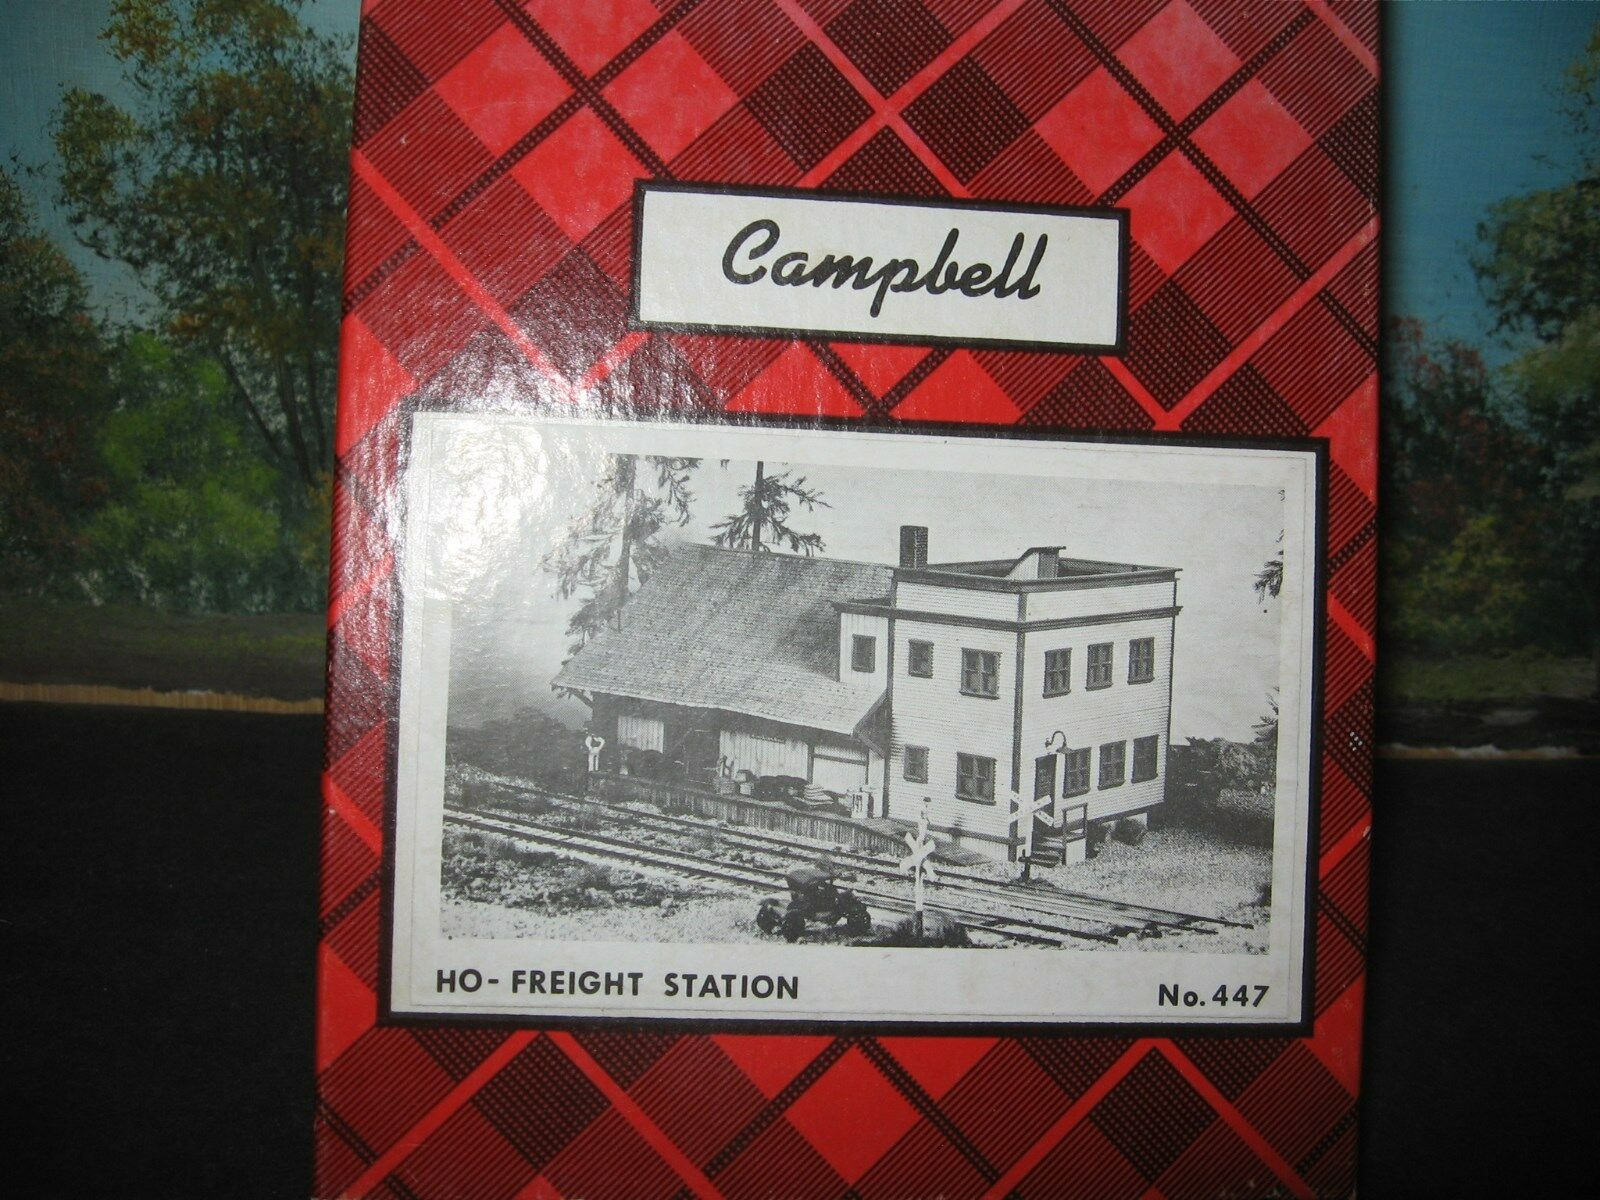 CAMPBELL SCALE MODELS HO-FREIGHT STATION